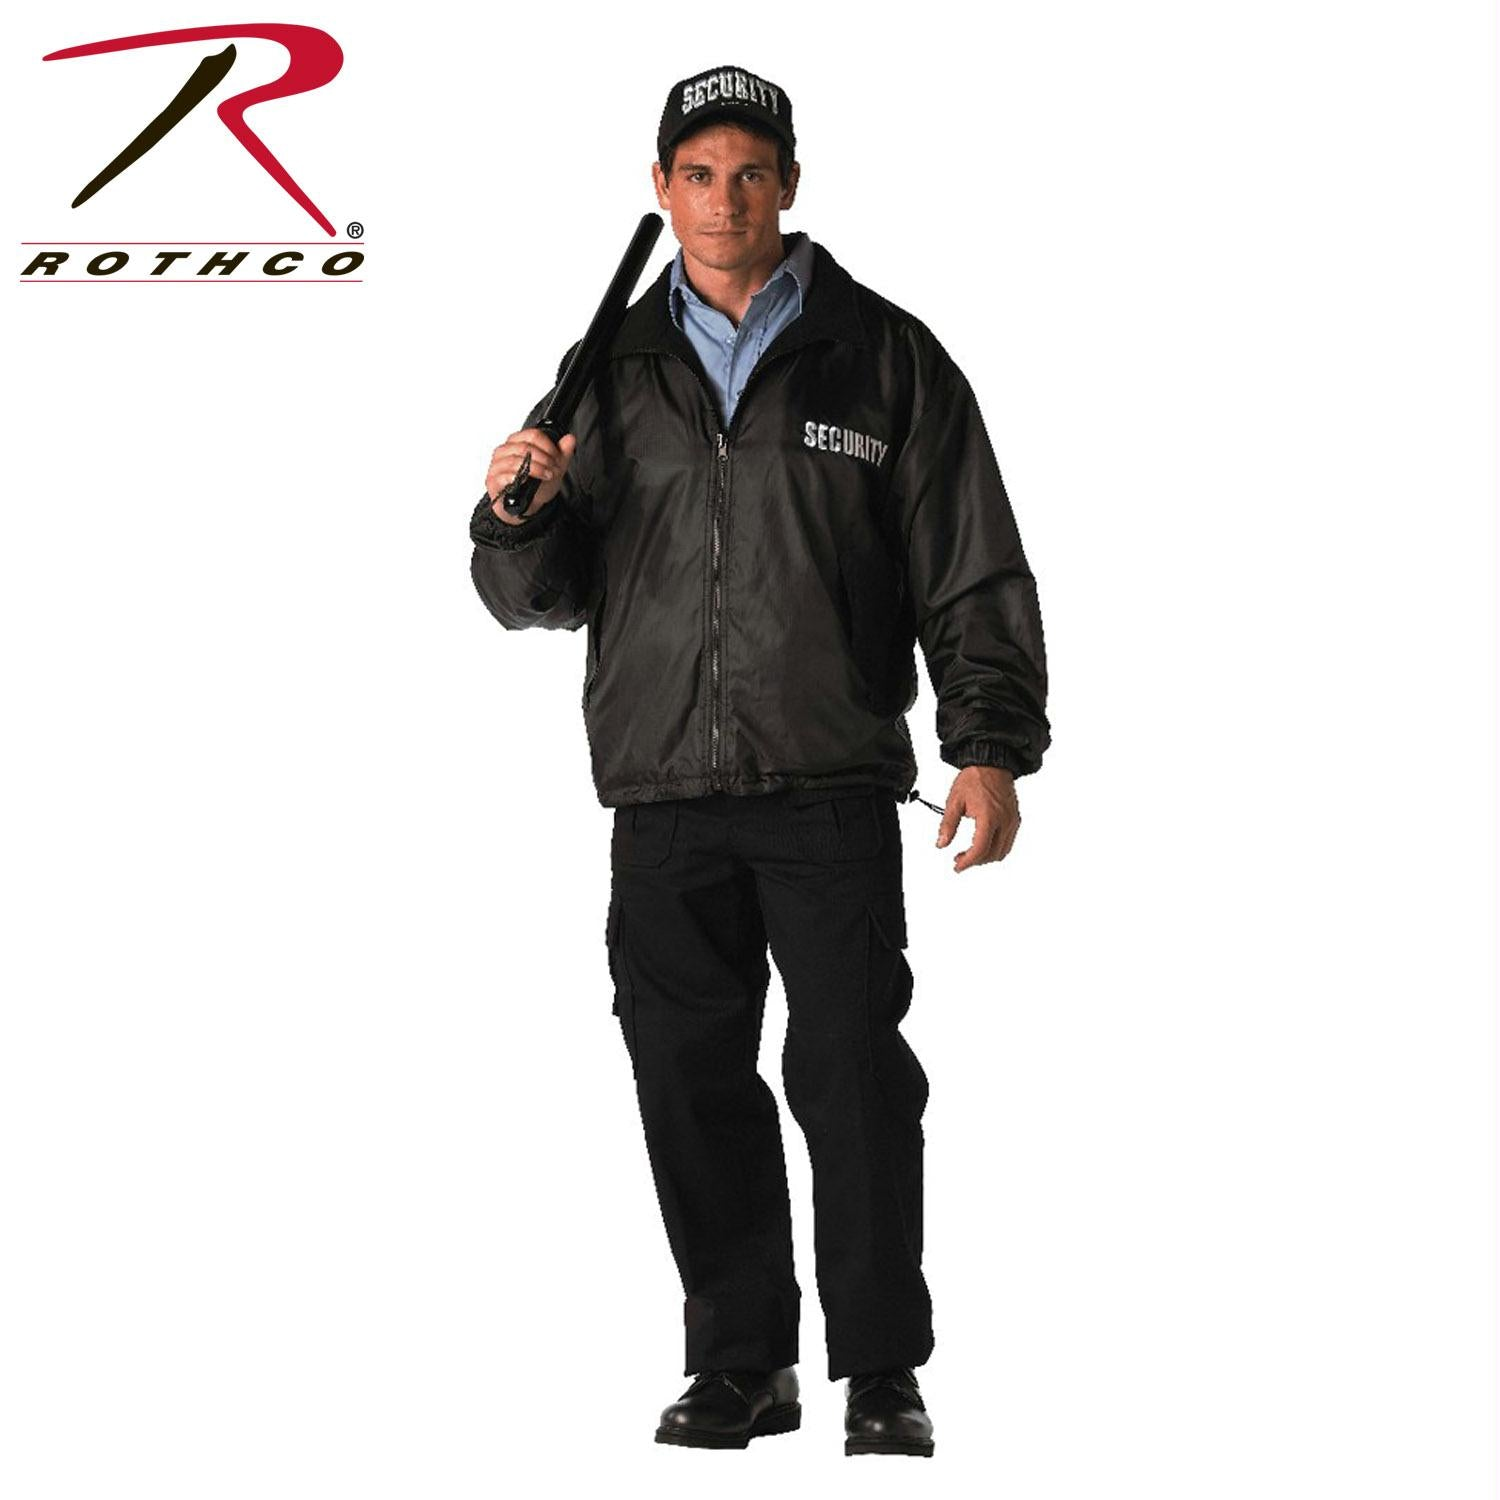 Rothco Security Reversible Nylon Polar Fleece Jacket - 3XL